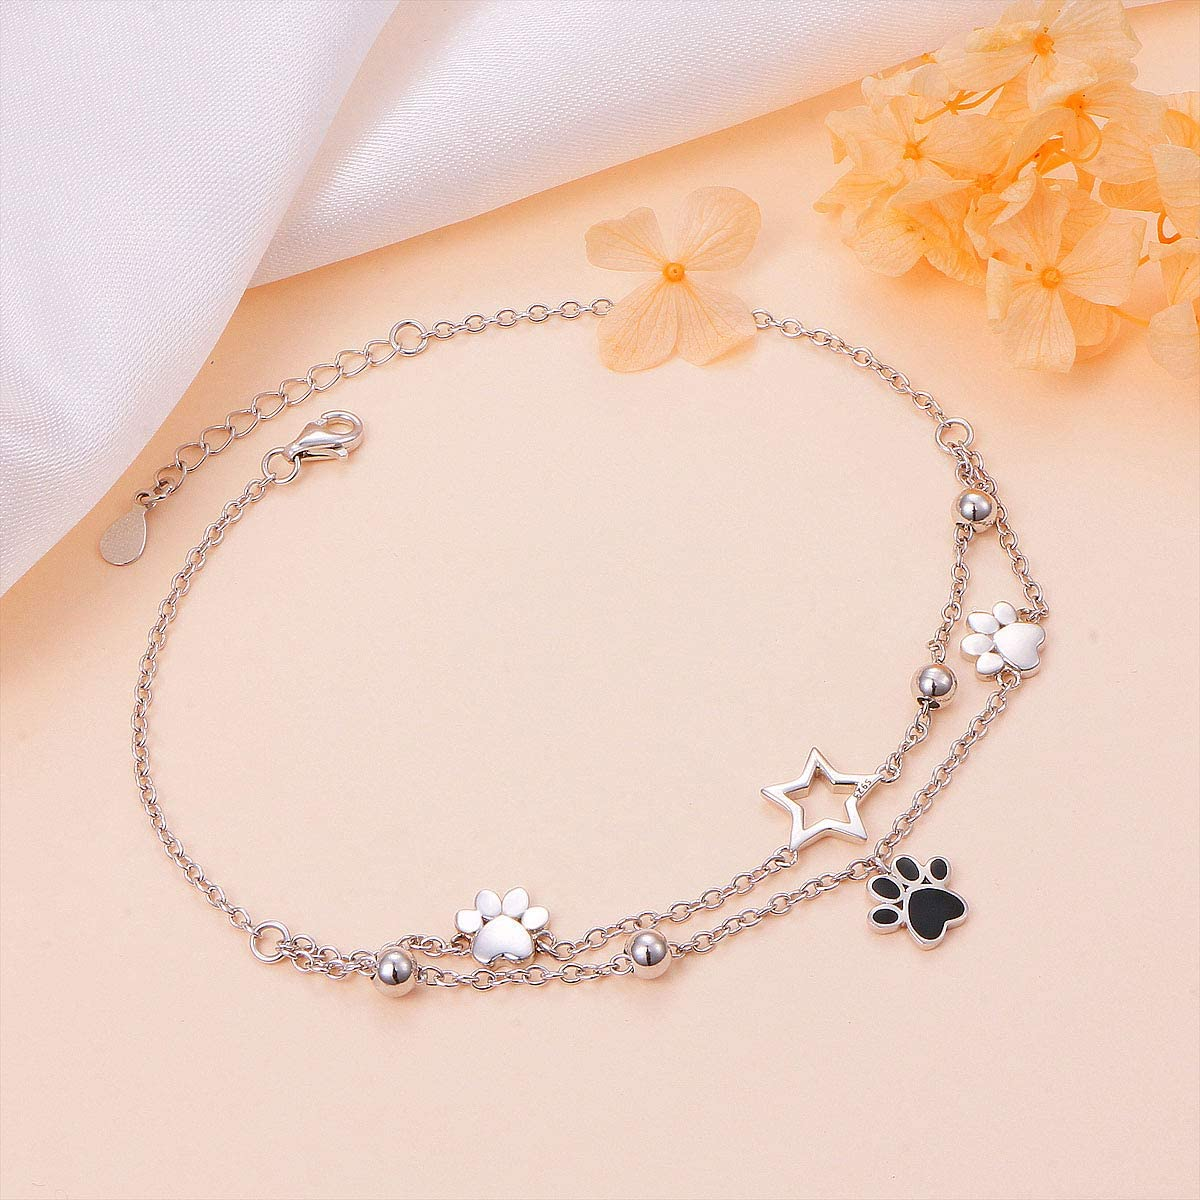 S925 Sterling Silver Foot Charm Jewelry Adjustable Anklet Large Link Bracelet Gift for Women Girls Valentines Day 9+1 inches